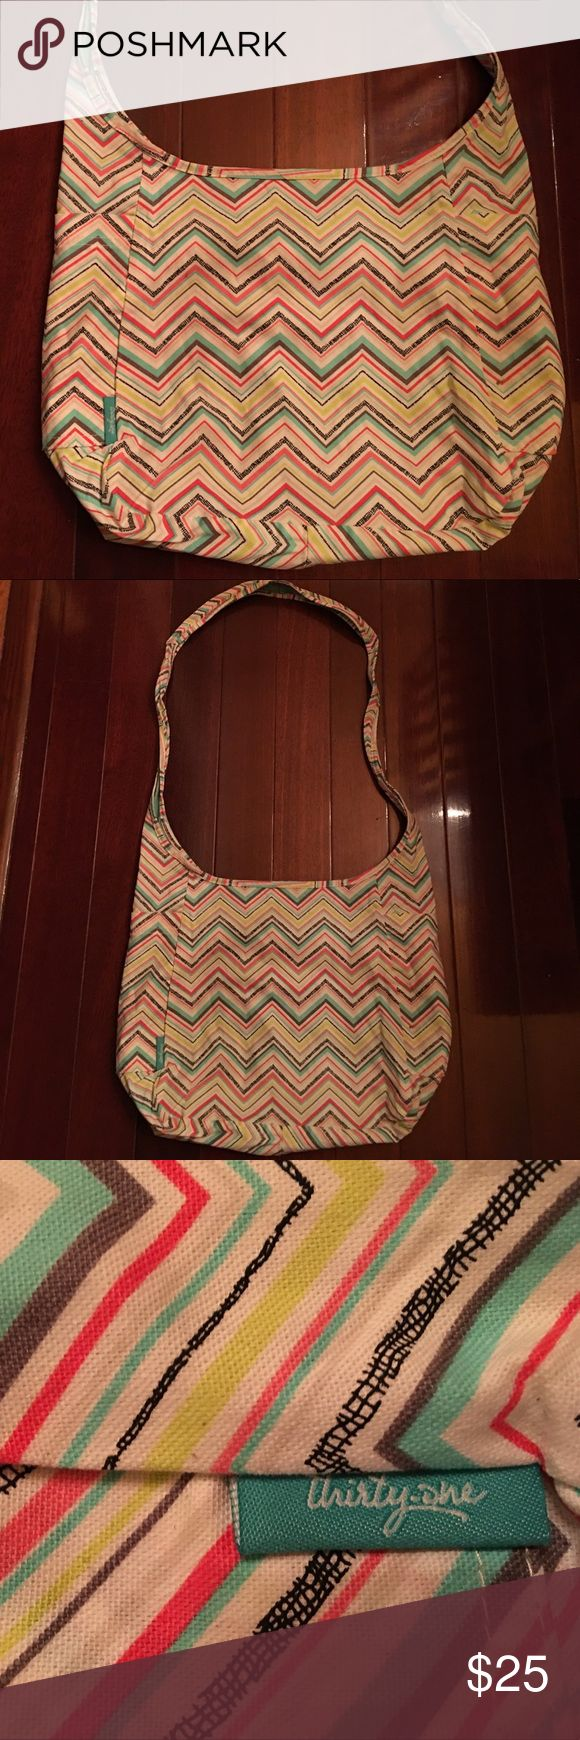 Thirty one Shoulder/crossbody Bag Thirty One shoulder/crossbody bag in excellent condition, gently used a few times. Very clean and fun design. Offers welcome and all purchases receive free gift 🎁! Thirty-One Bags Crossbody Bags